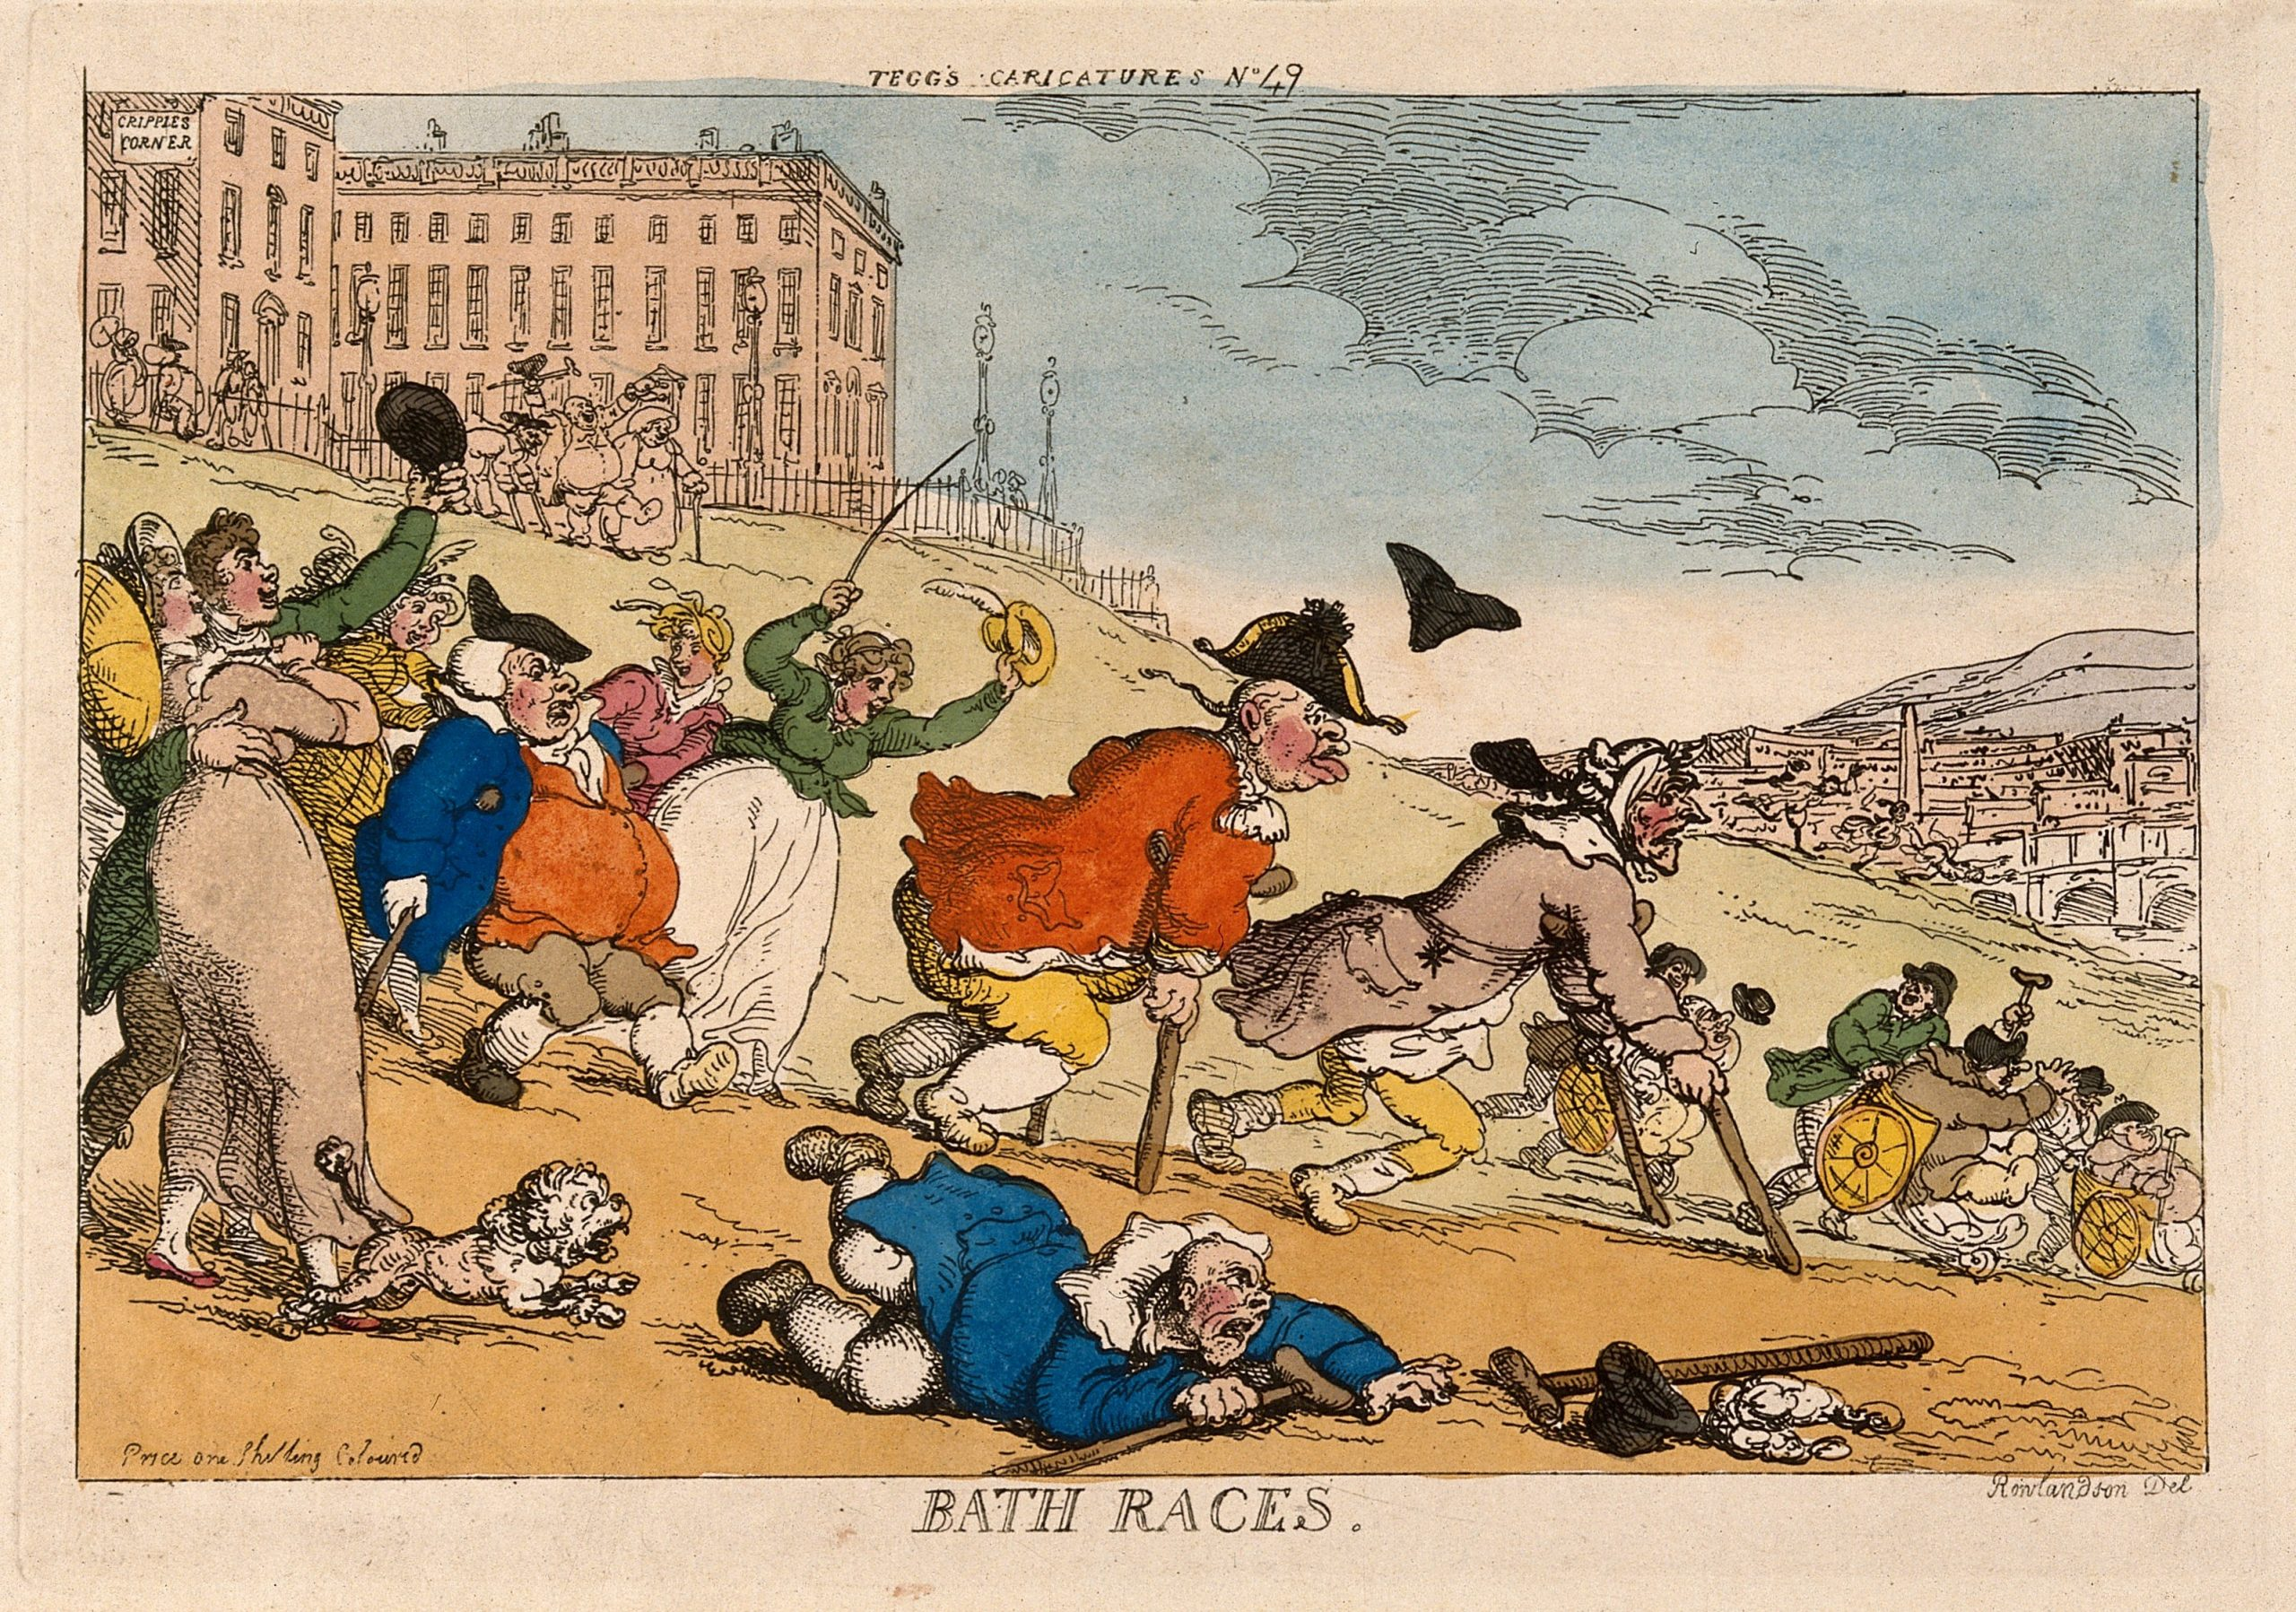 A hand-coloured print of a number of invalids rushing down the side of a hill in Bath. The invalids use crutches with three others being escorted in bath chairs. A man wearing regimentals is in the centre of the picture whilst in the foreground, another man has fallen onto his front, his crutches splayed. A couple, embracing each other, cheer the competitors on. On the top of the hill stand grand buildings, one with the sign 'Cripples Corner'. Bridge over the river with the town on the right.